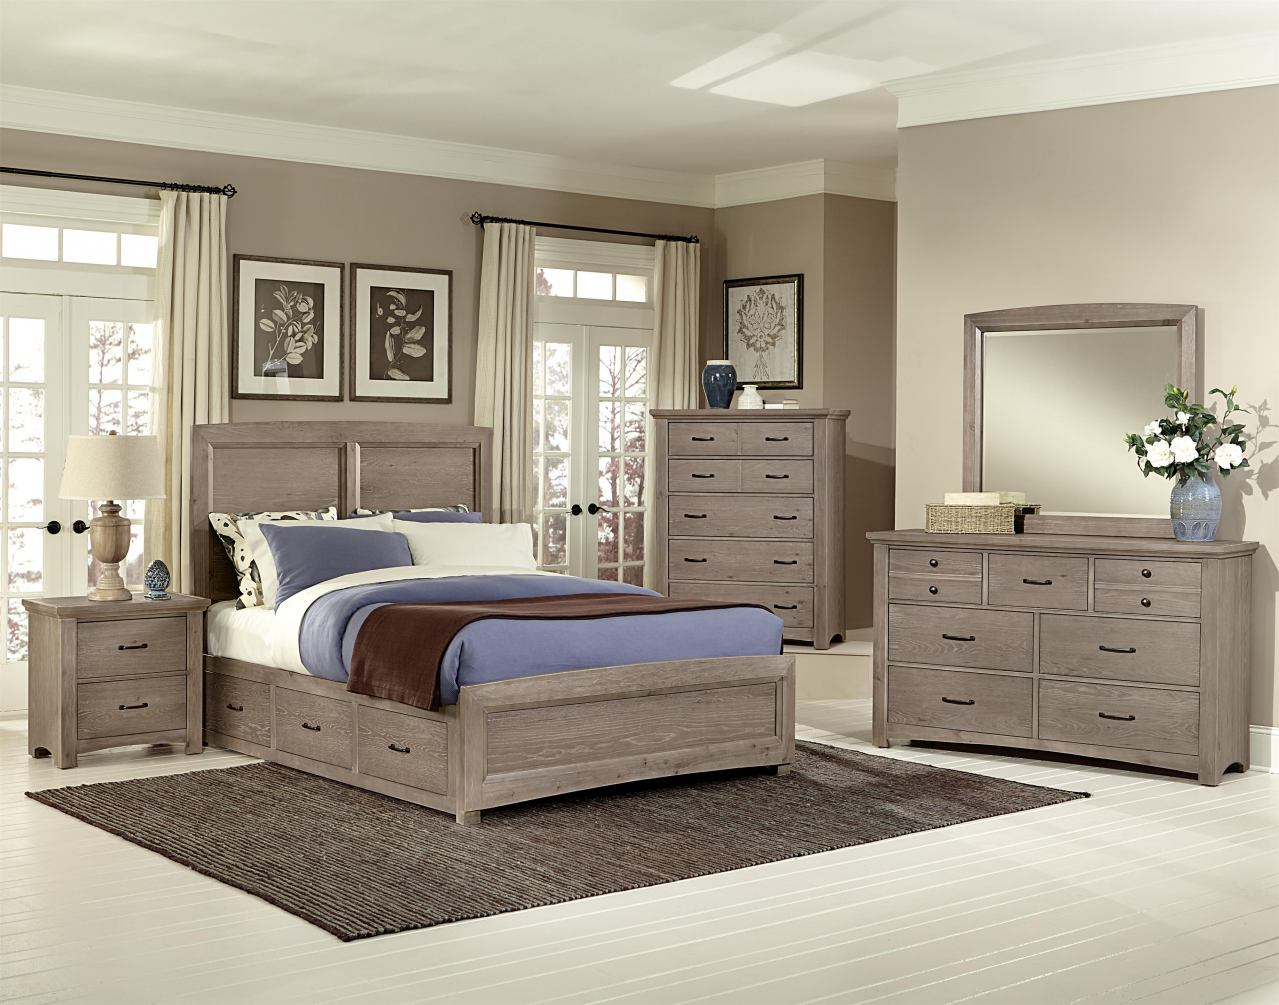 All-American Transitions 4 Piece Panel Bedroom Set with 2 Side Storage in Driftwood Oak